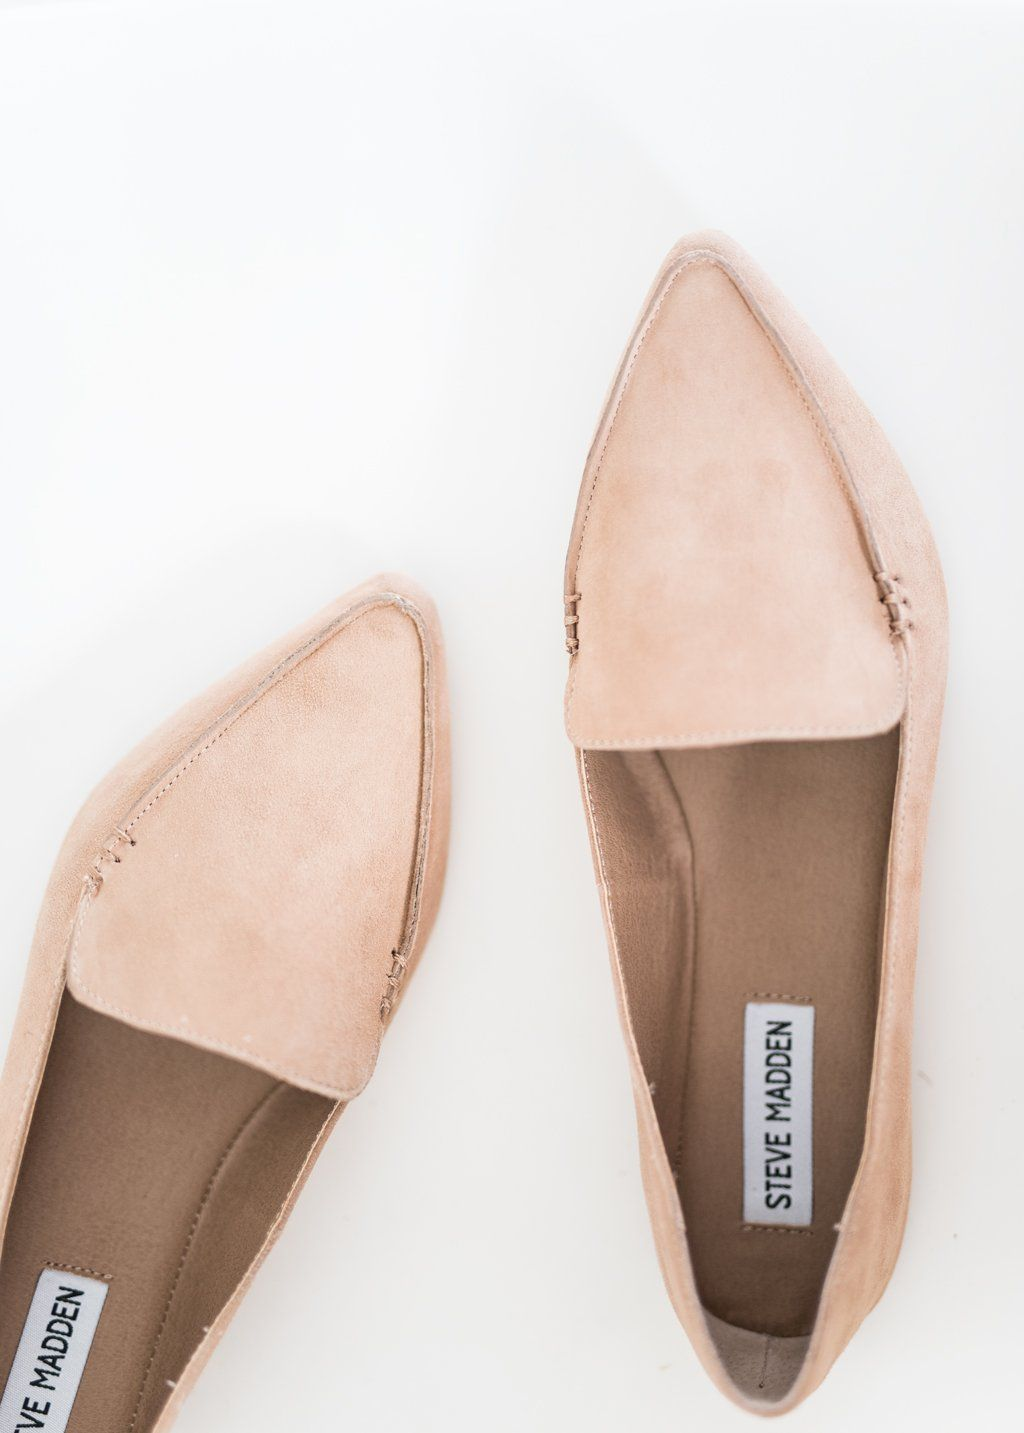 9f0fc20e1ae Feather Loafer in Camel Suede | Wish List Part 2 | Shoes, Suede ...